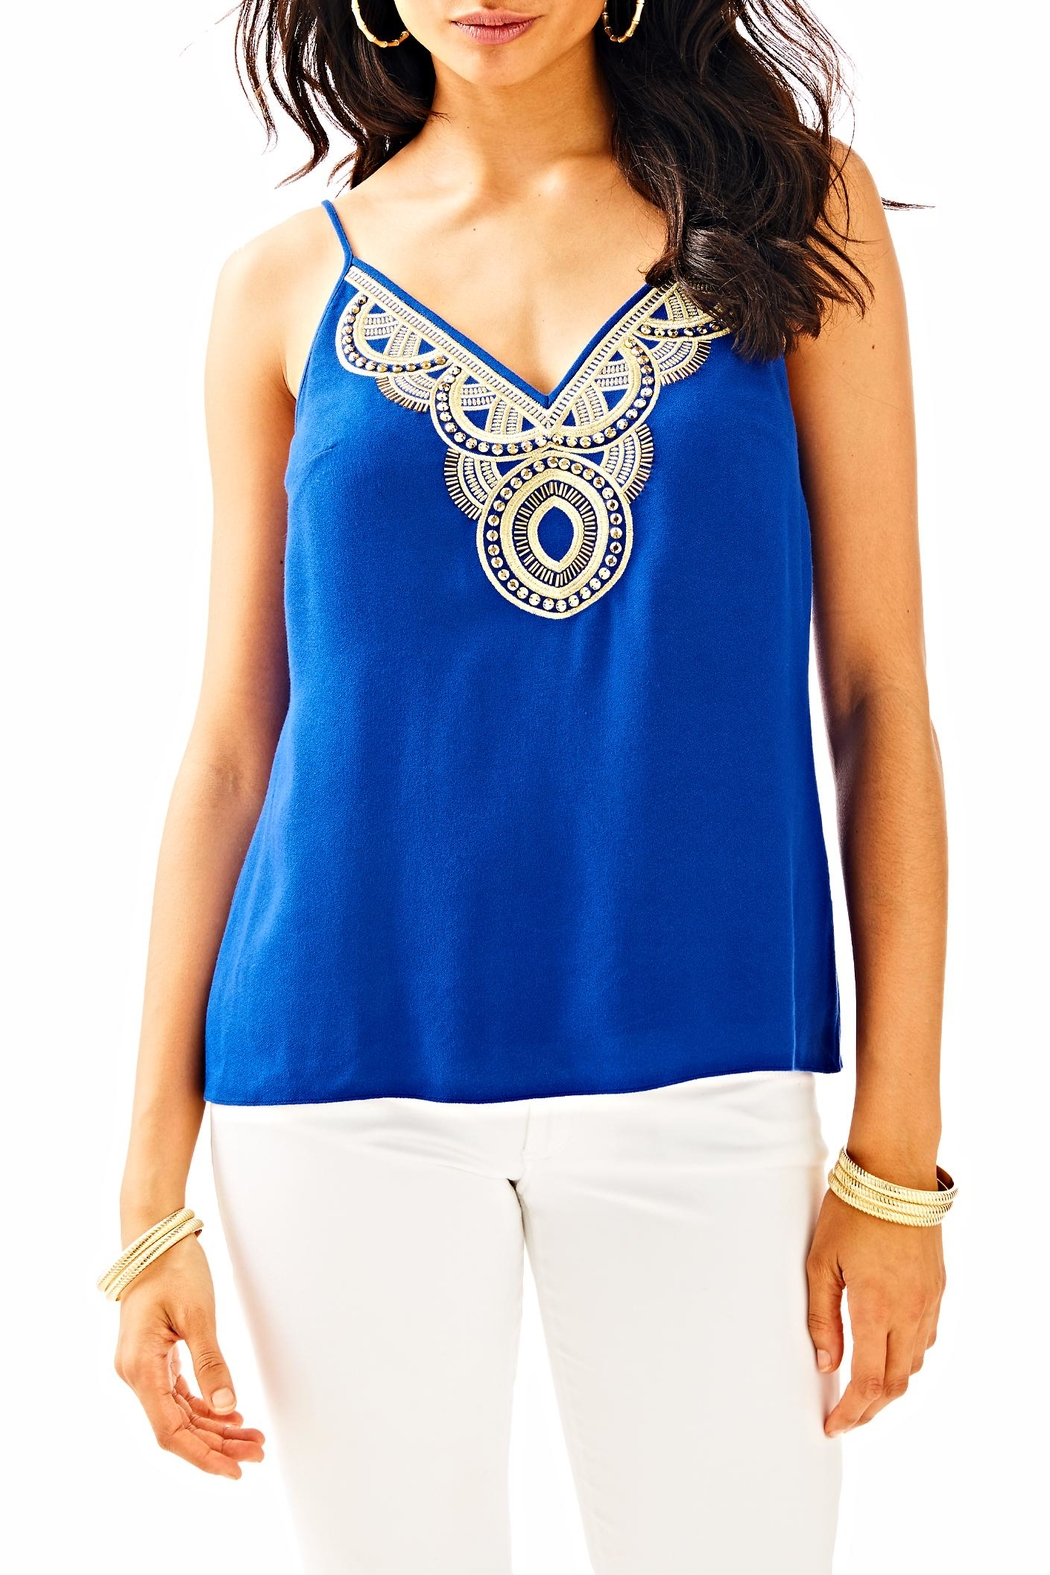 Lilly Pulitzer Lela Top - Front Cropped Image